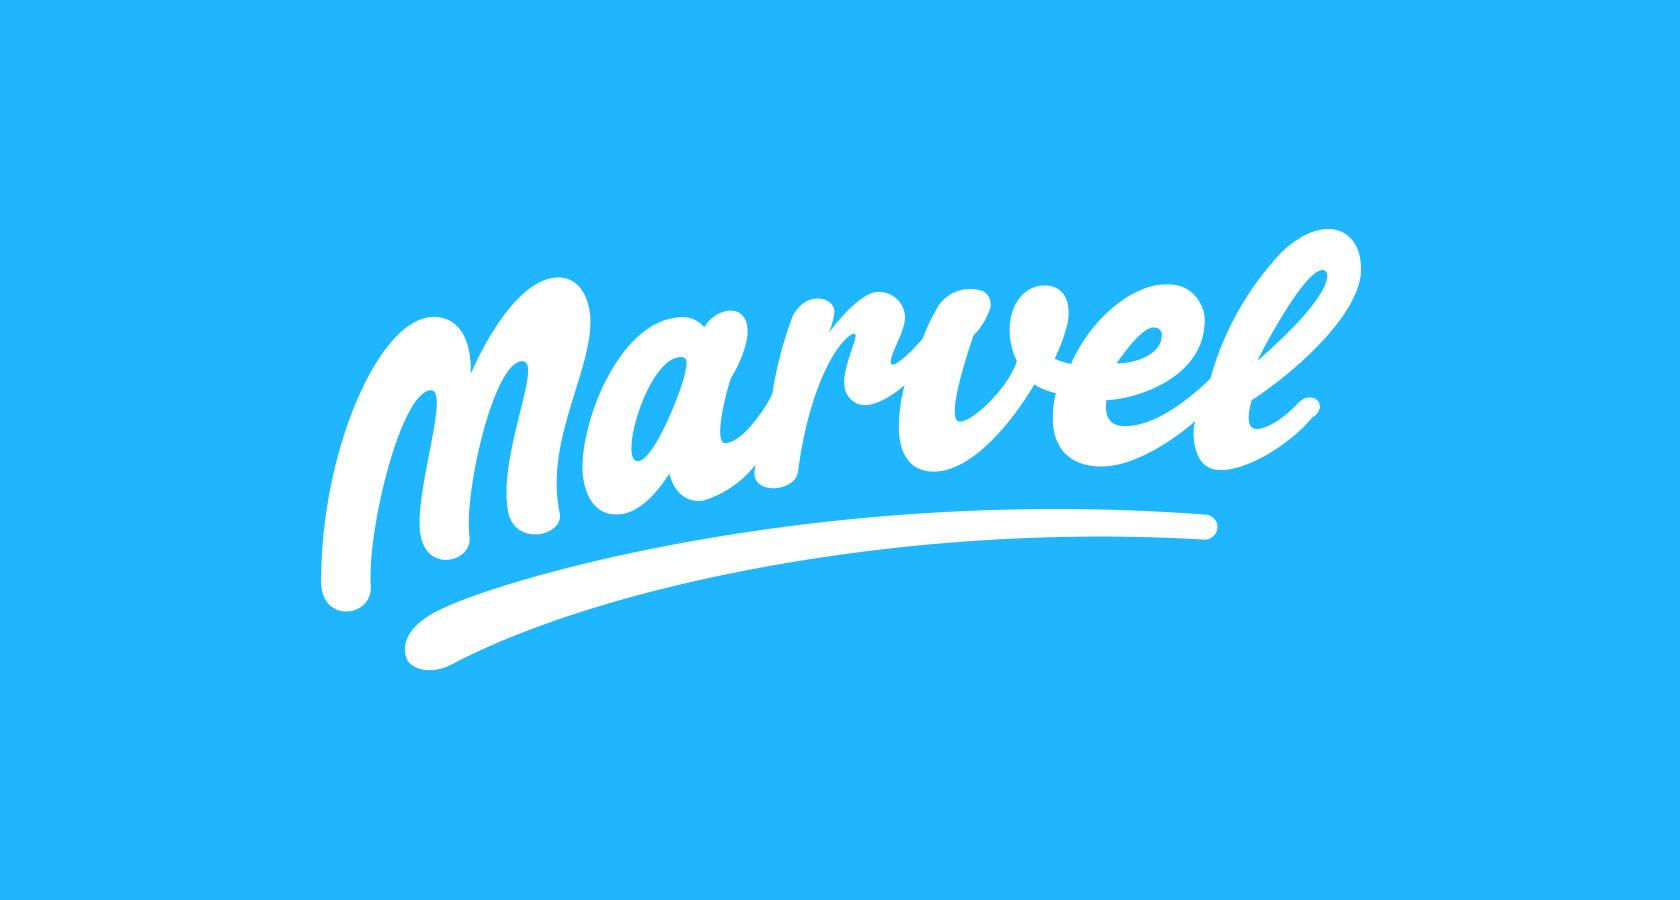 paul von excite marvel logotype